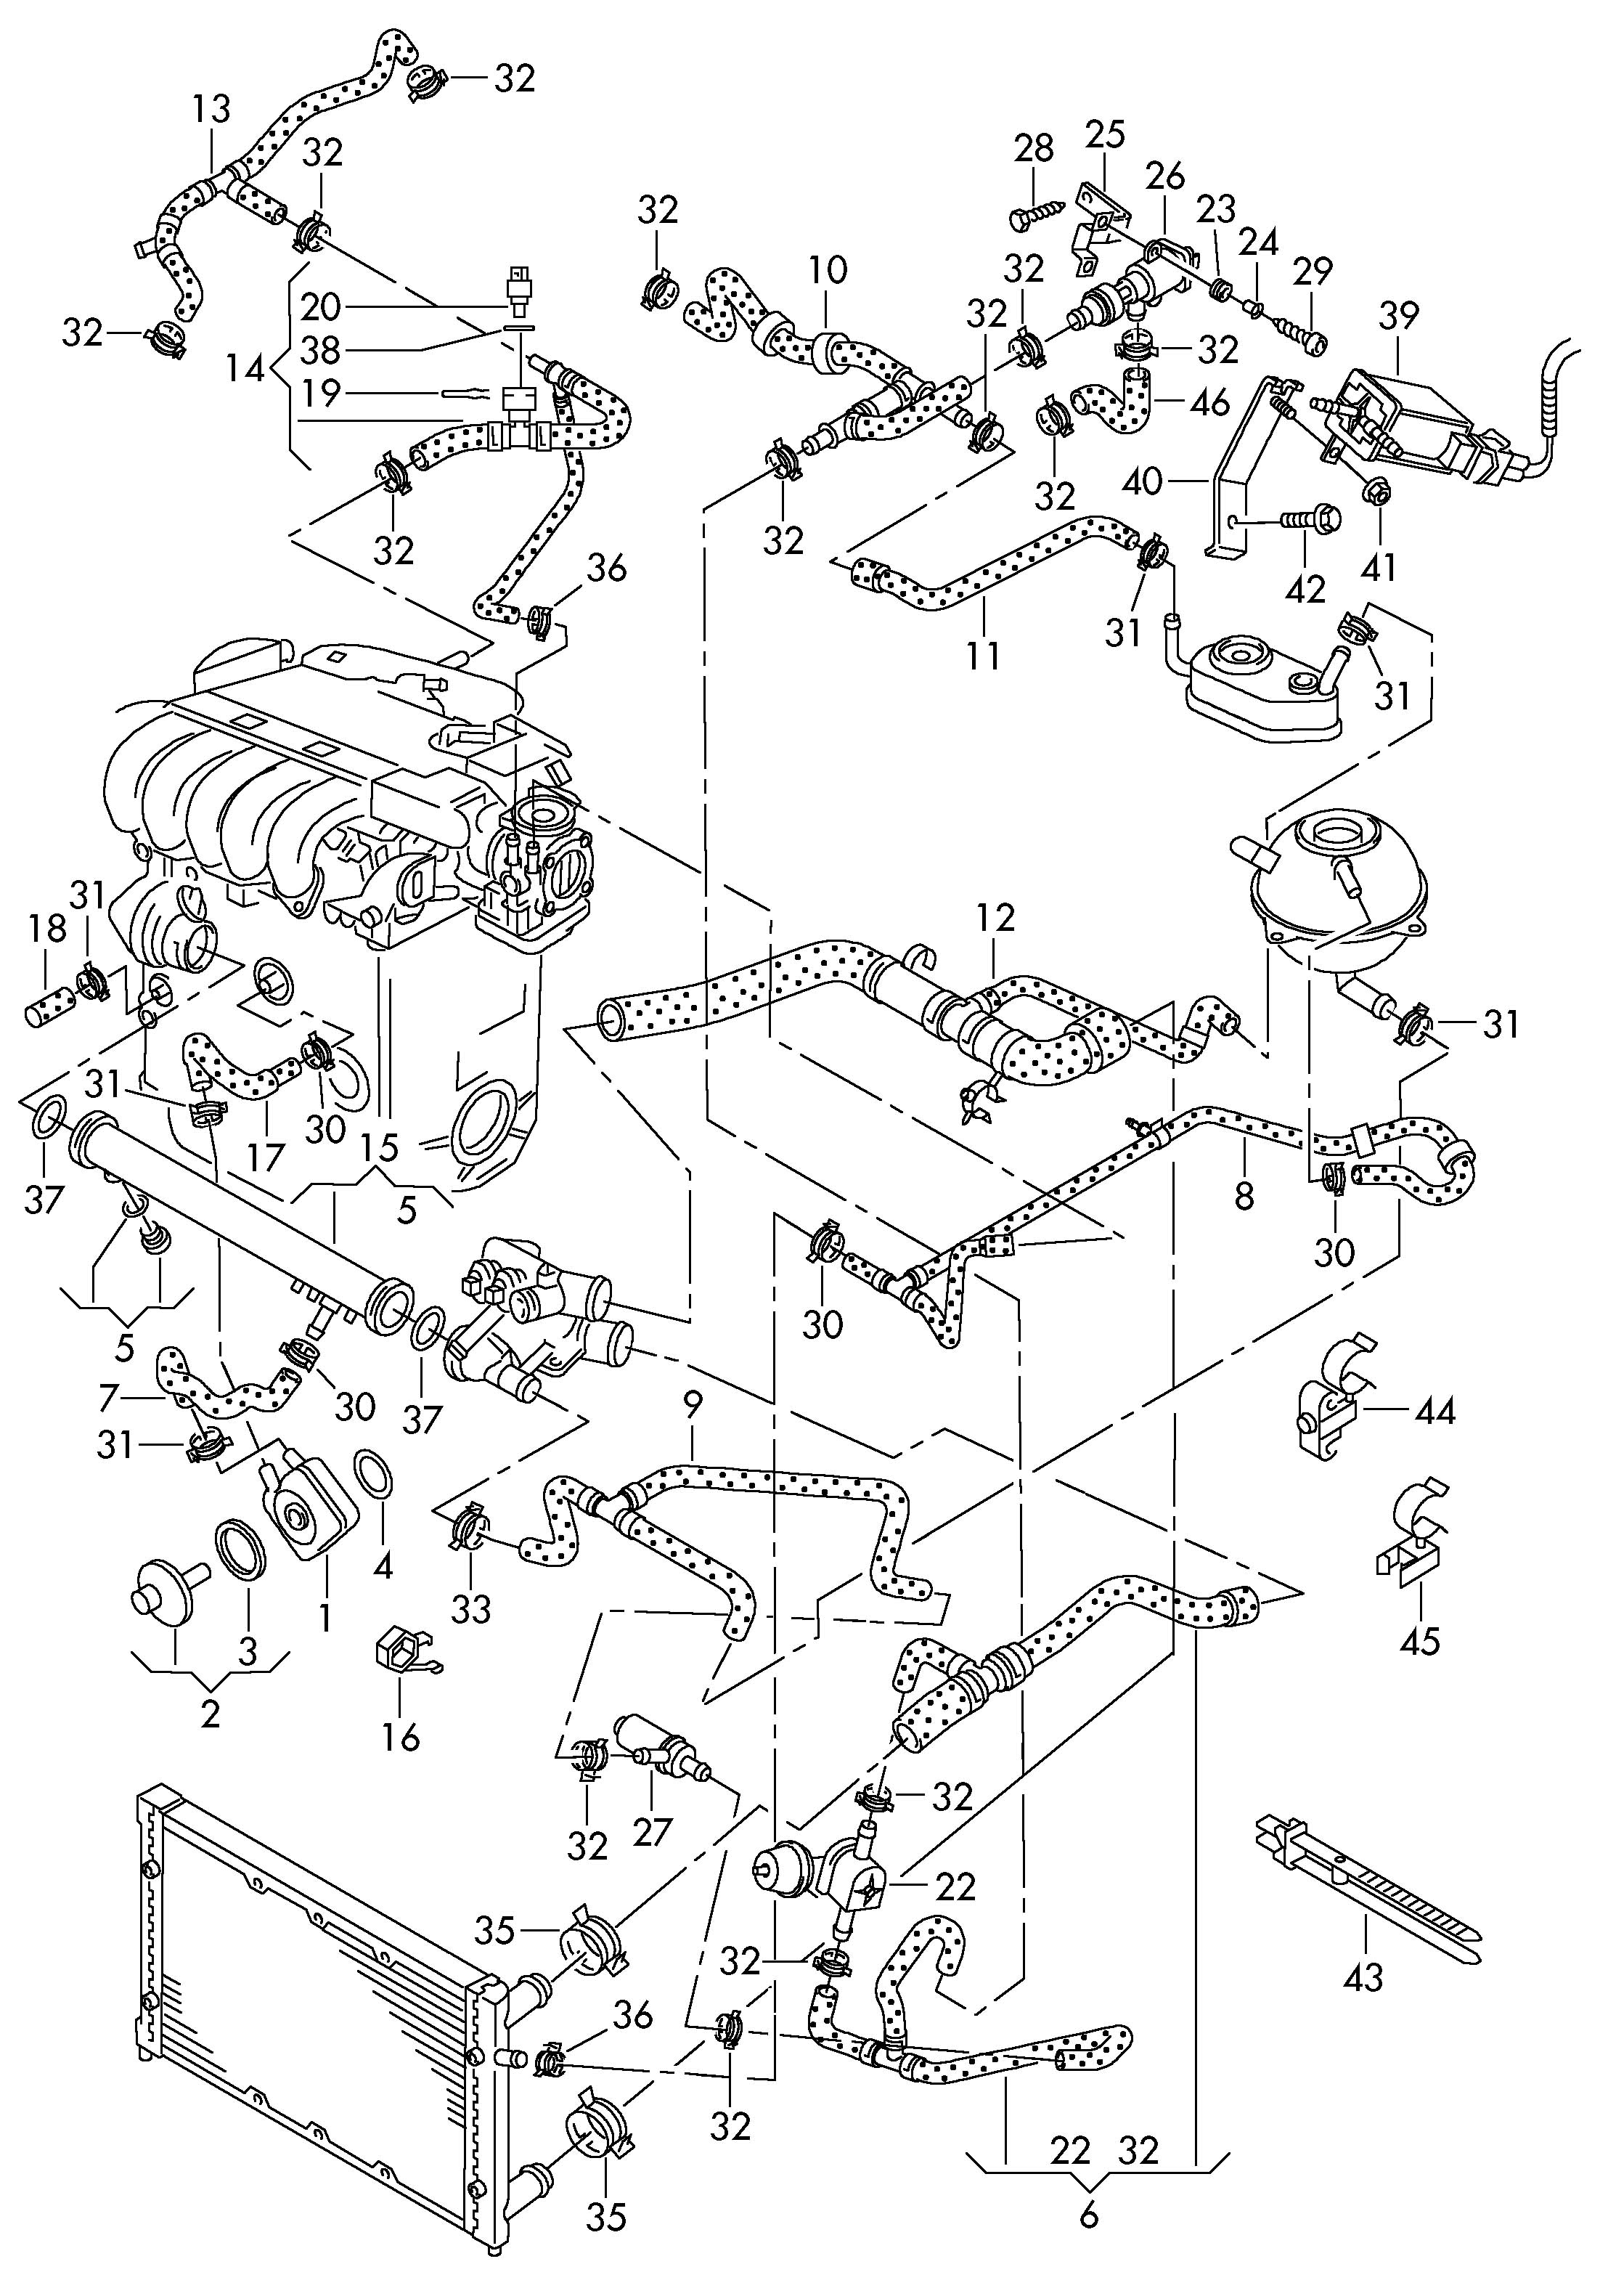 2002 Volkswagen Jetta 1 8 Engine Diagram 2002 Jetta 2.0